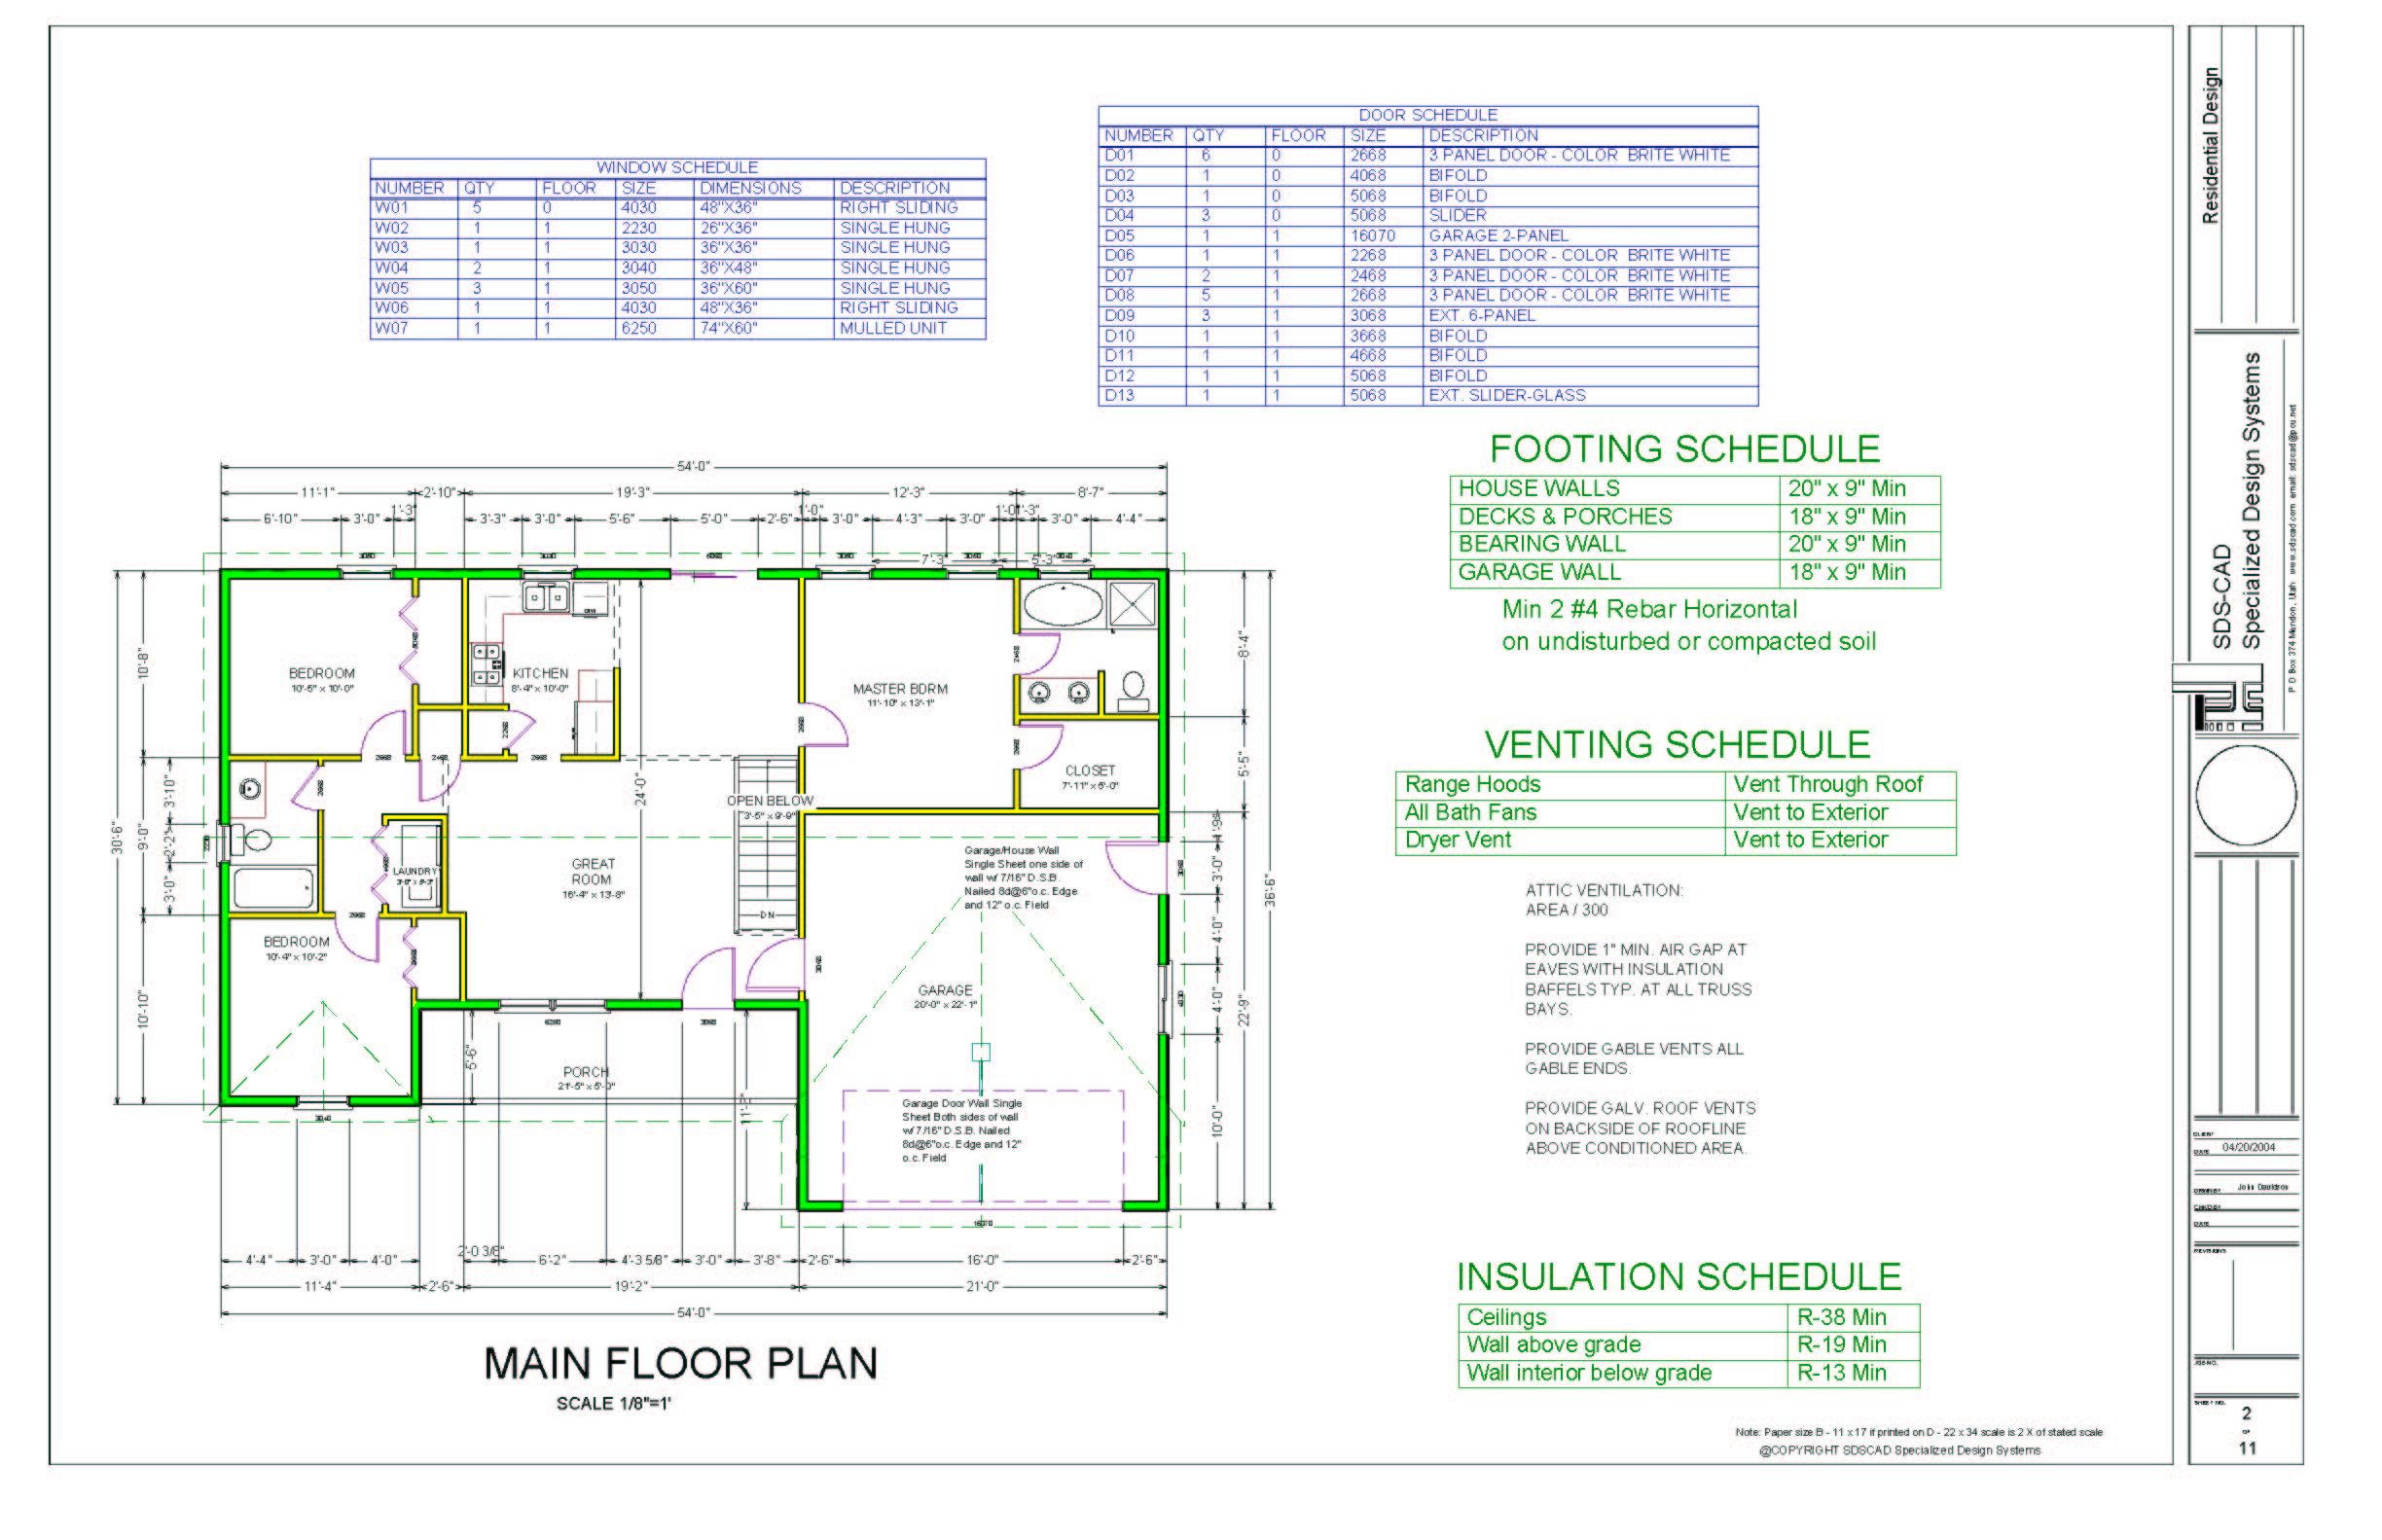 Home design blueprint maker architecture software plant layout plans home design blueprint maker architecture software plant layout plans warehouse with malvernweather Choice Image